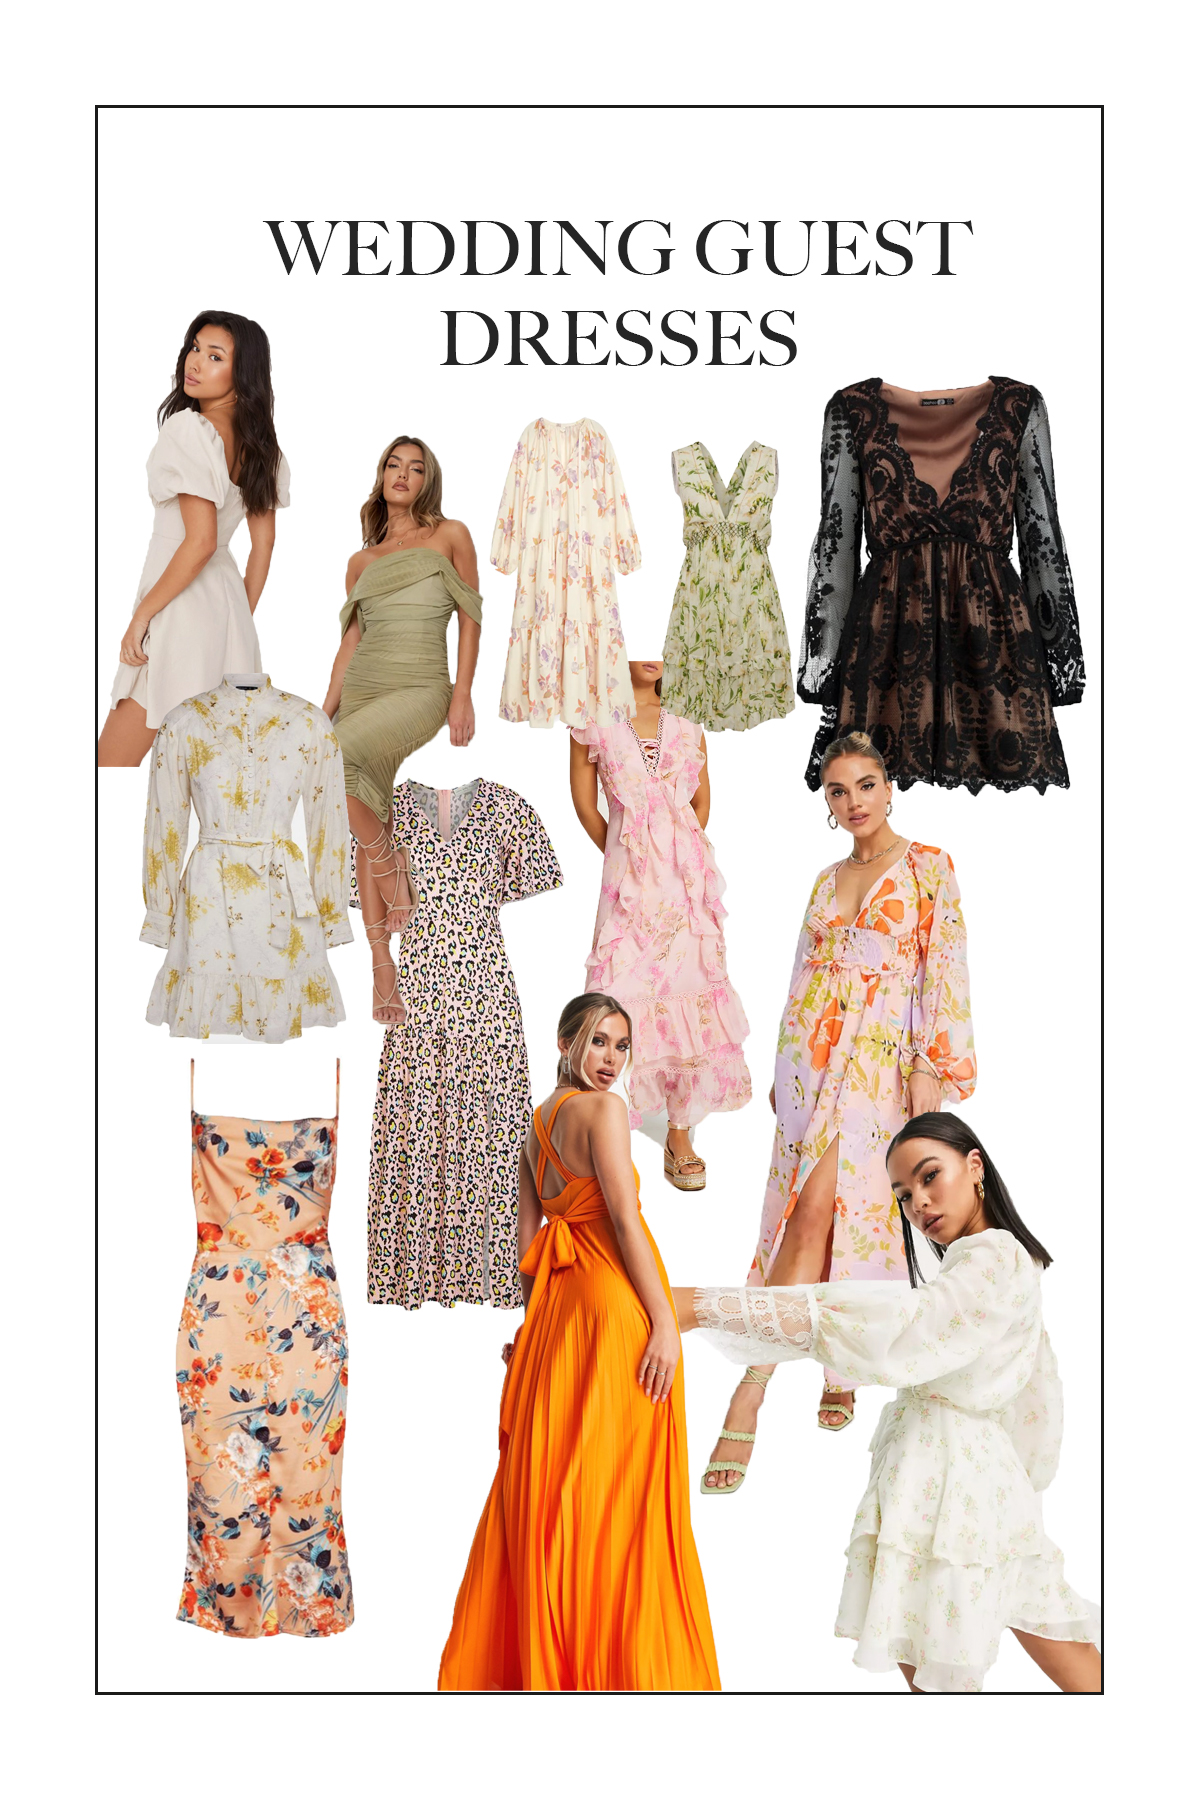 Wedding Season is upon us so here are some gorgeous wedding guest dresses that you could wear to someone's special day!